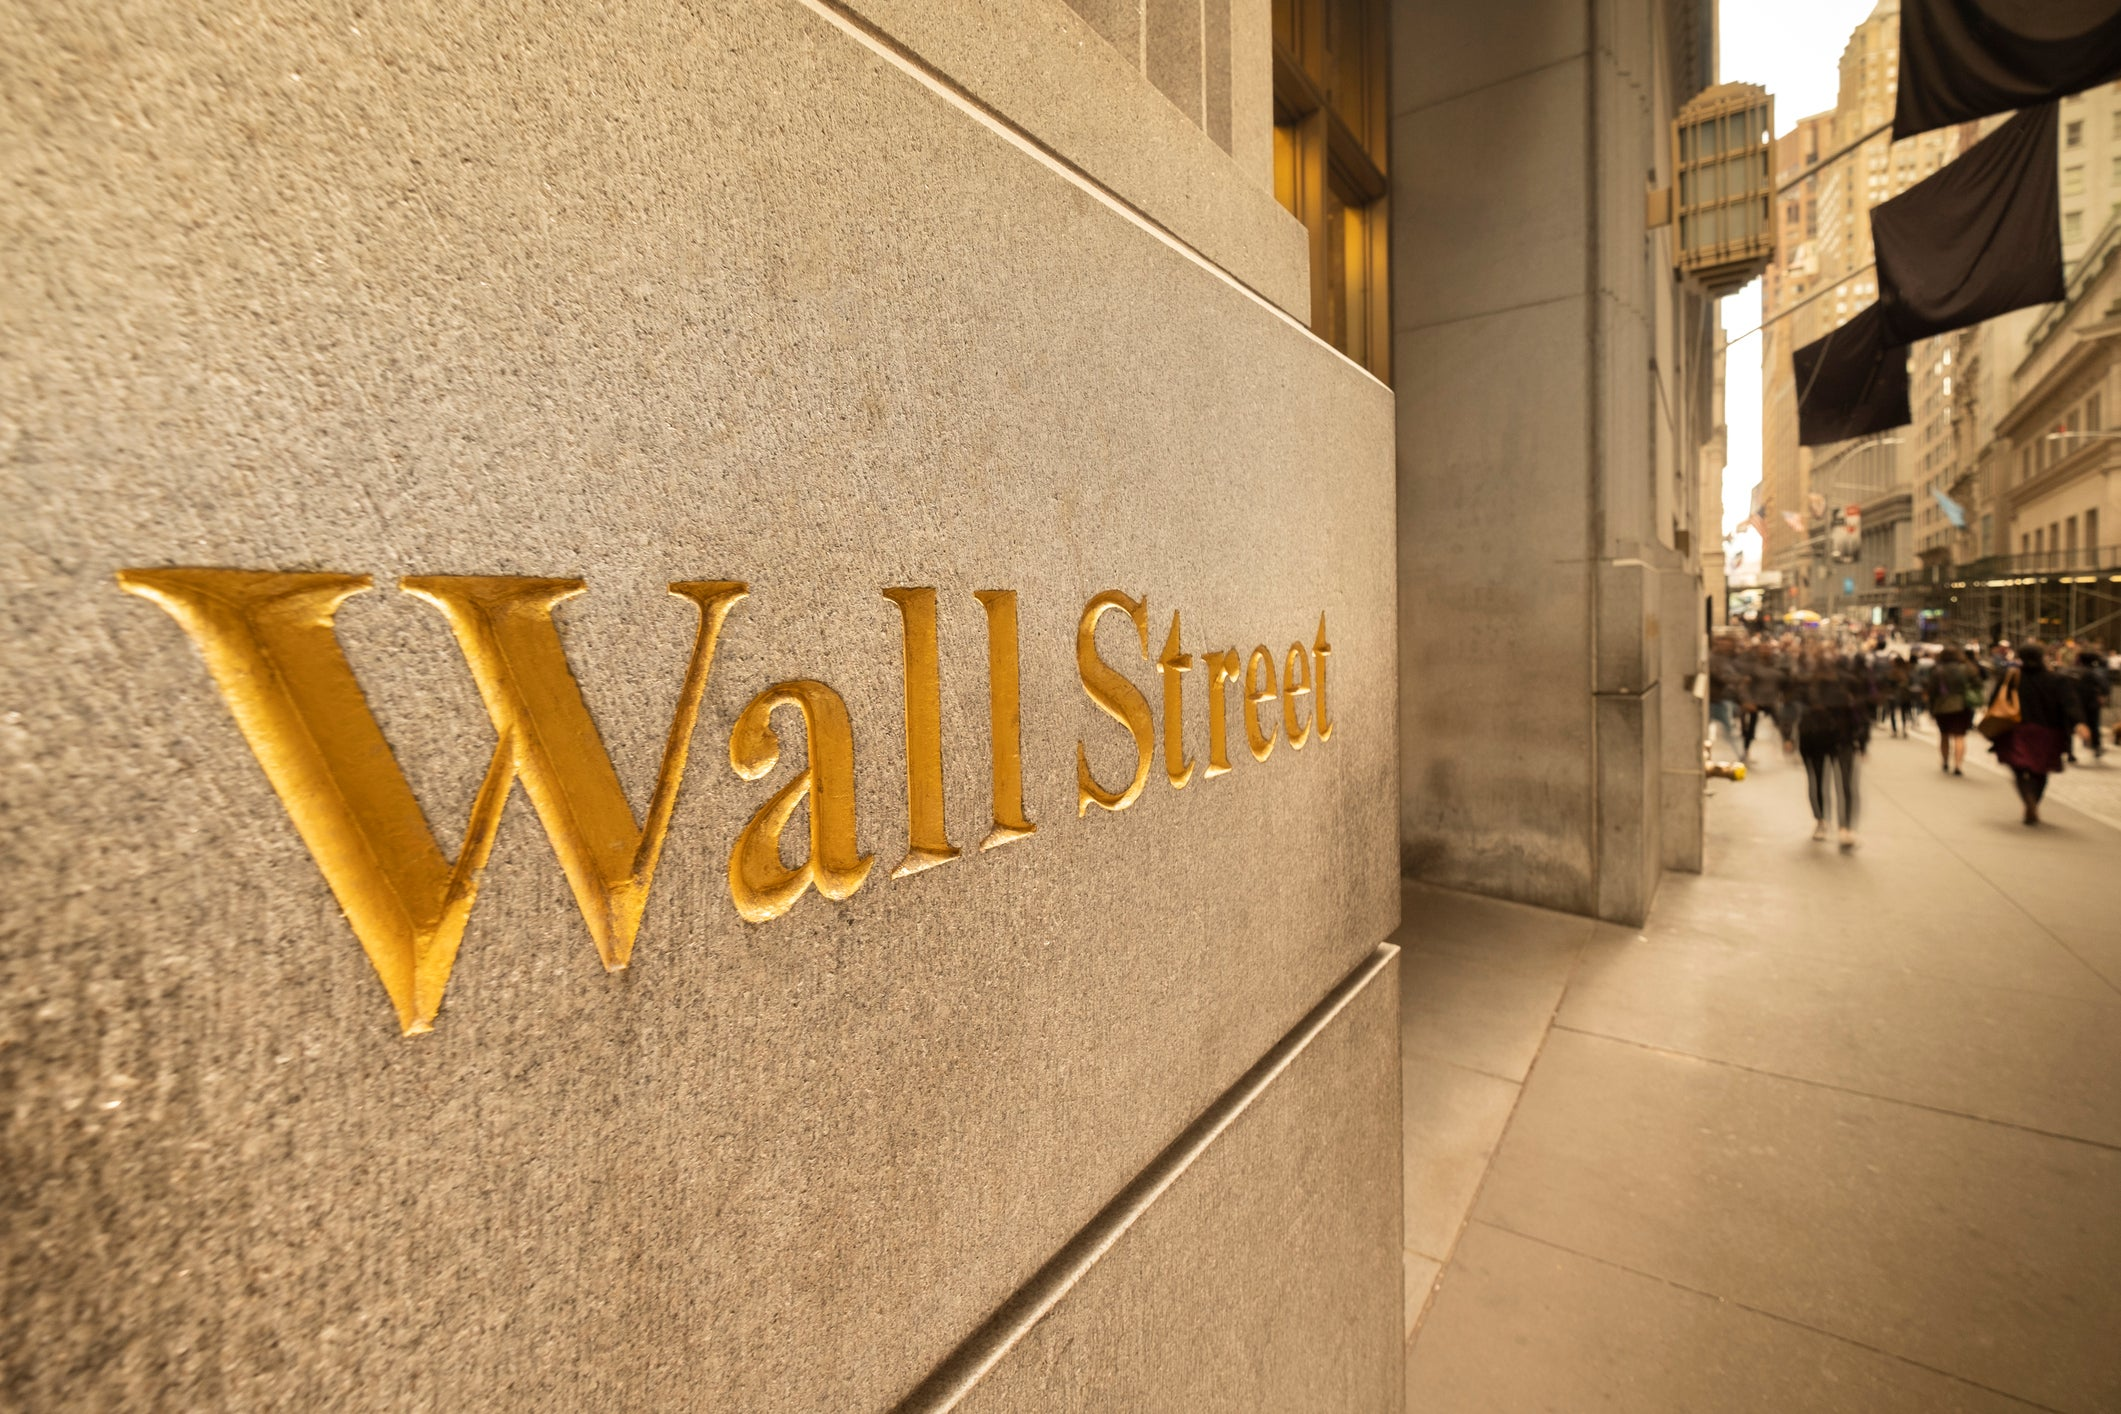 3 Stocks Wall Street Expects Will Double or Triple in 1 Year